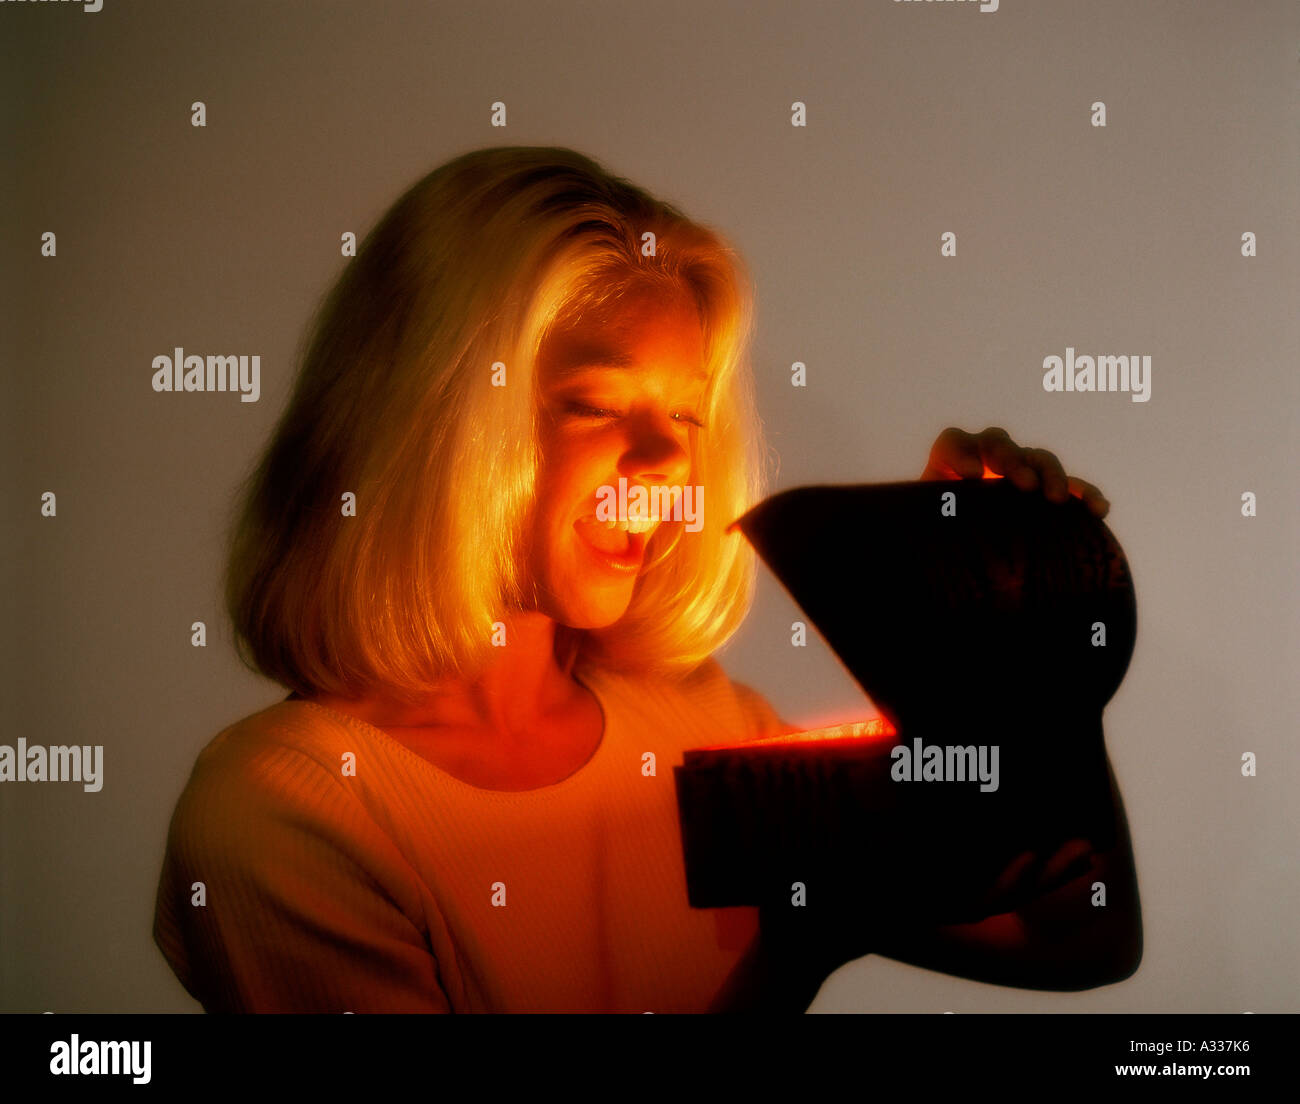 Mysterious glowing box 7C8 - Stock Image